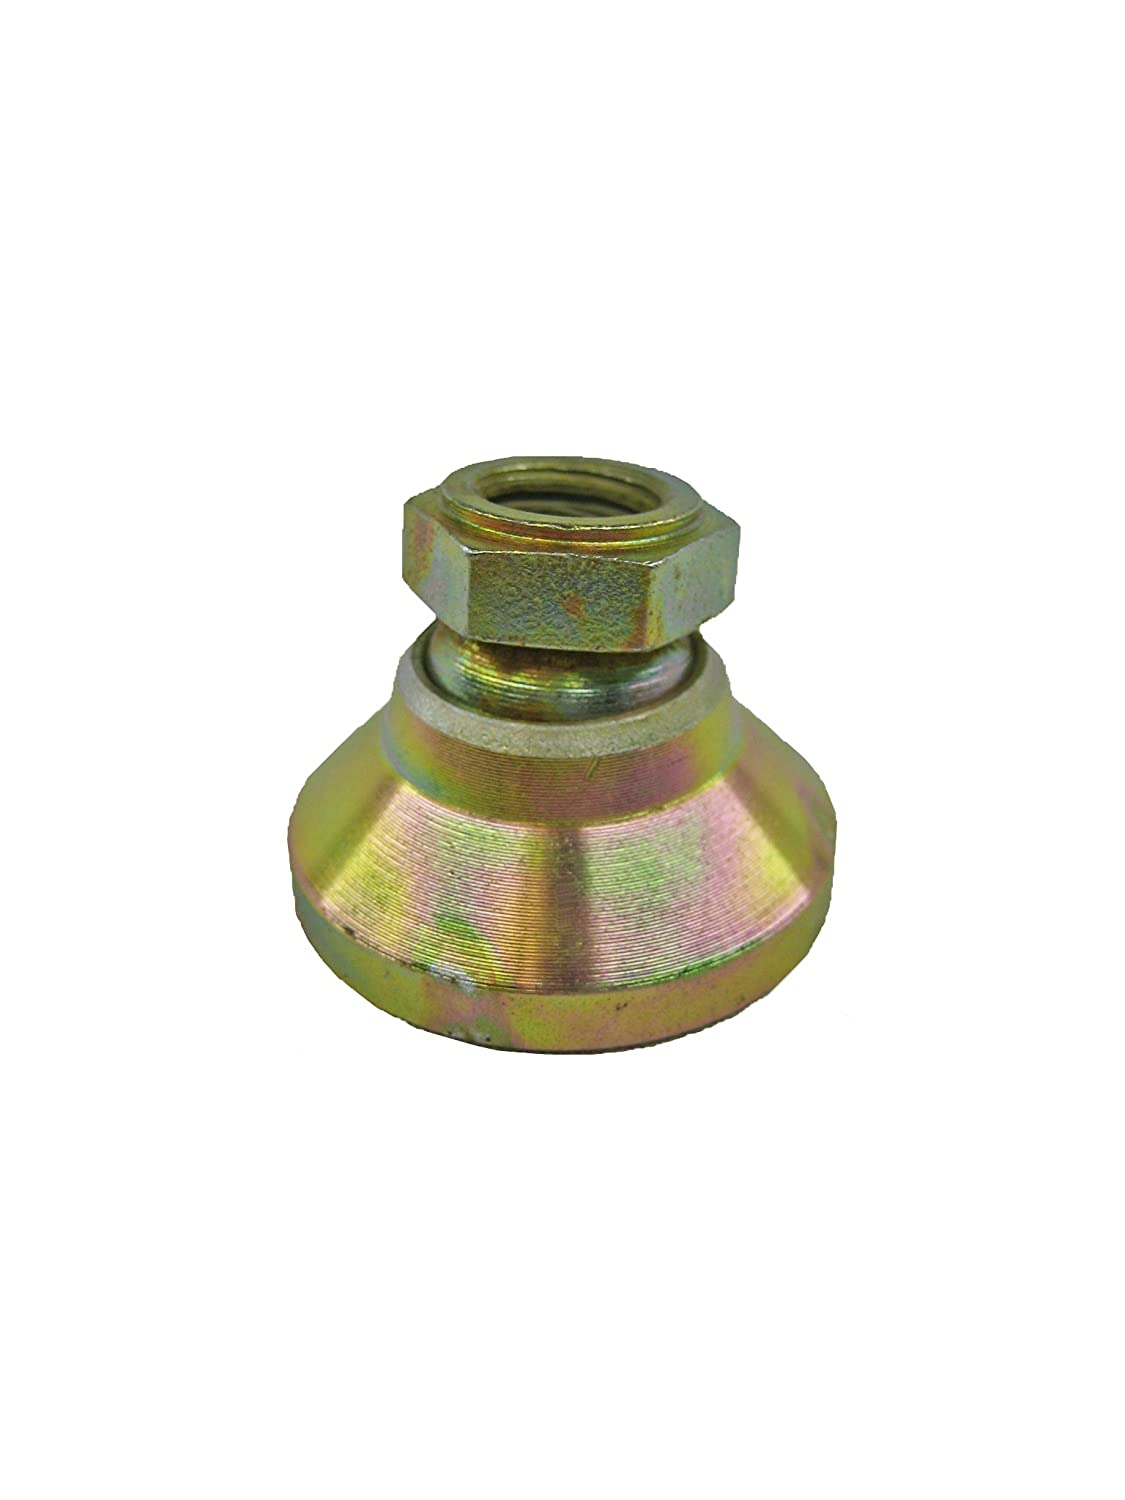 Yellow Zinc Plated Finish 1-1//4-7 Thread Size WincoLEVEL-IT 16TLVT Series LPSO Carbon Steel Tapped Socket Type Leveling Mount J.W Inch Size 43000lbs Maximum Load Capacity